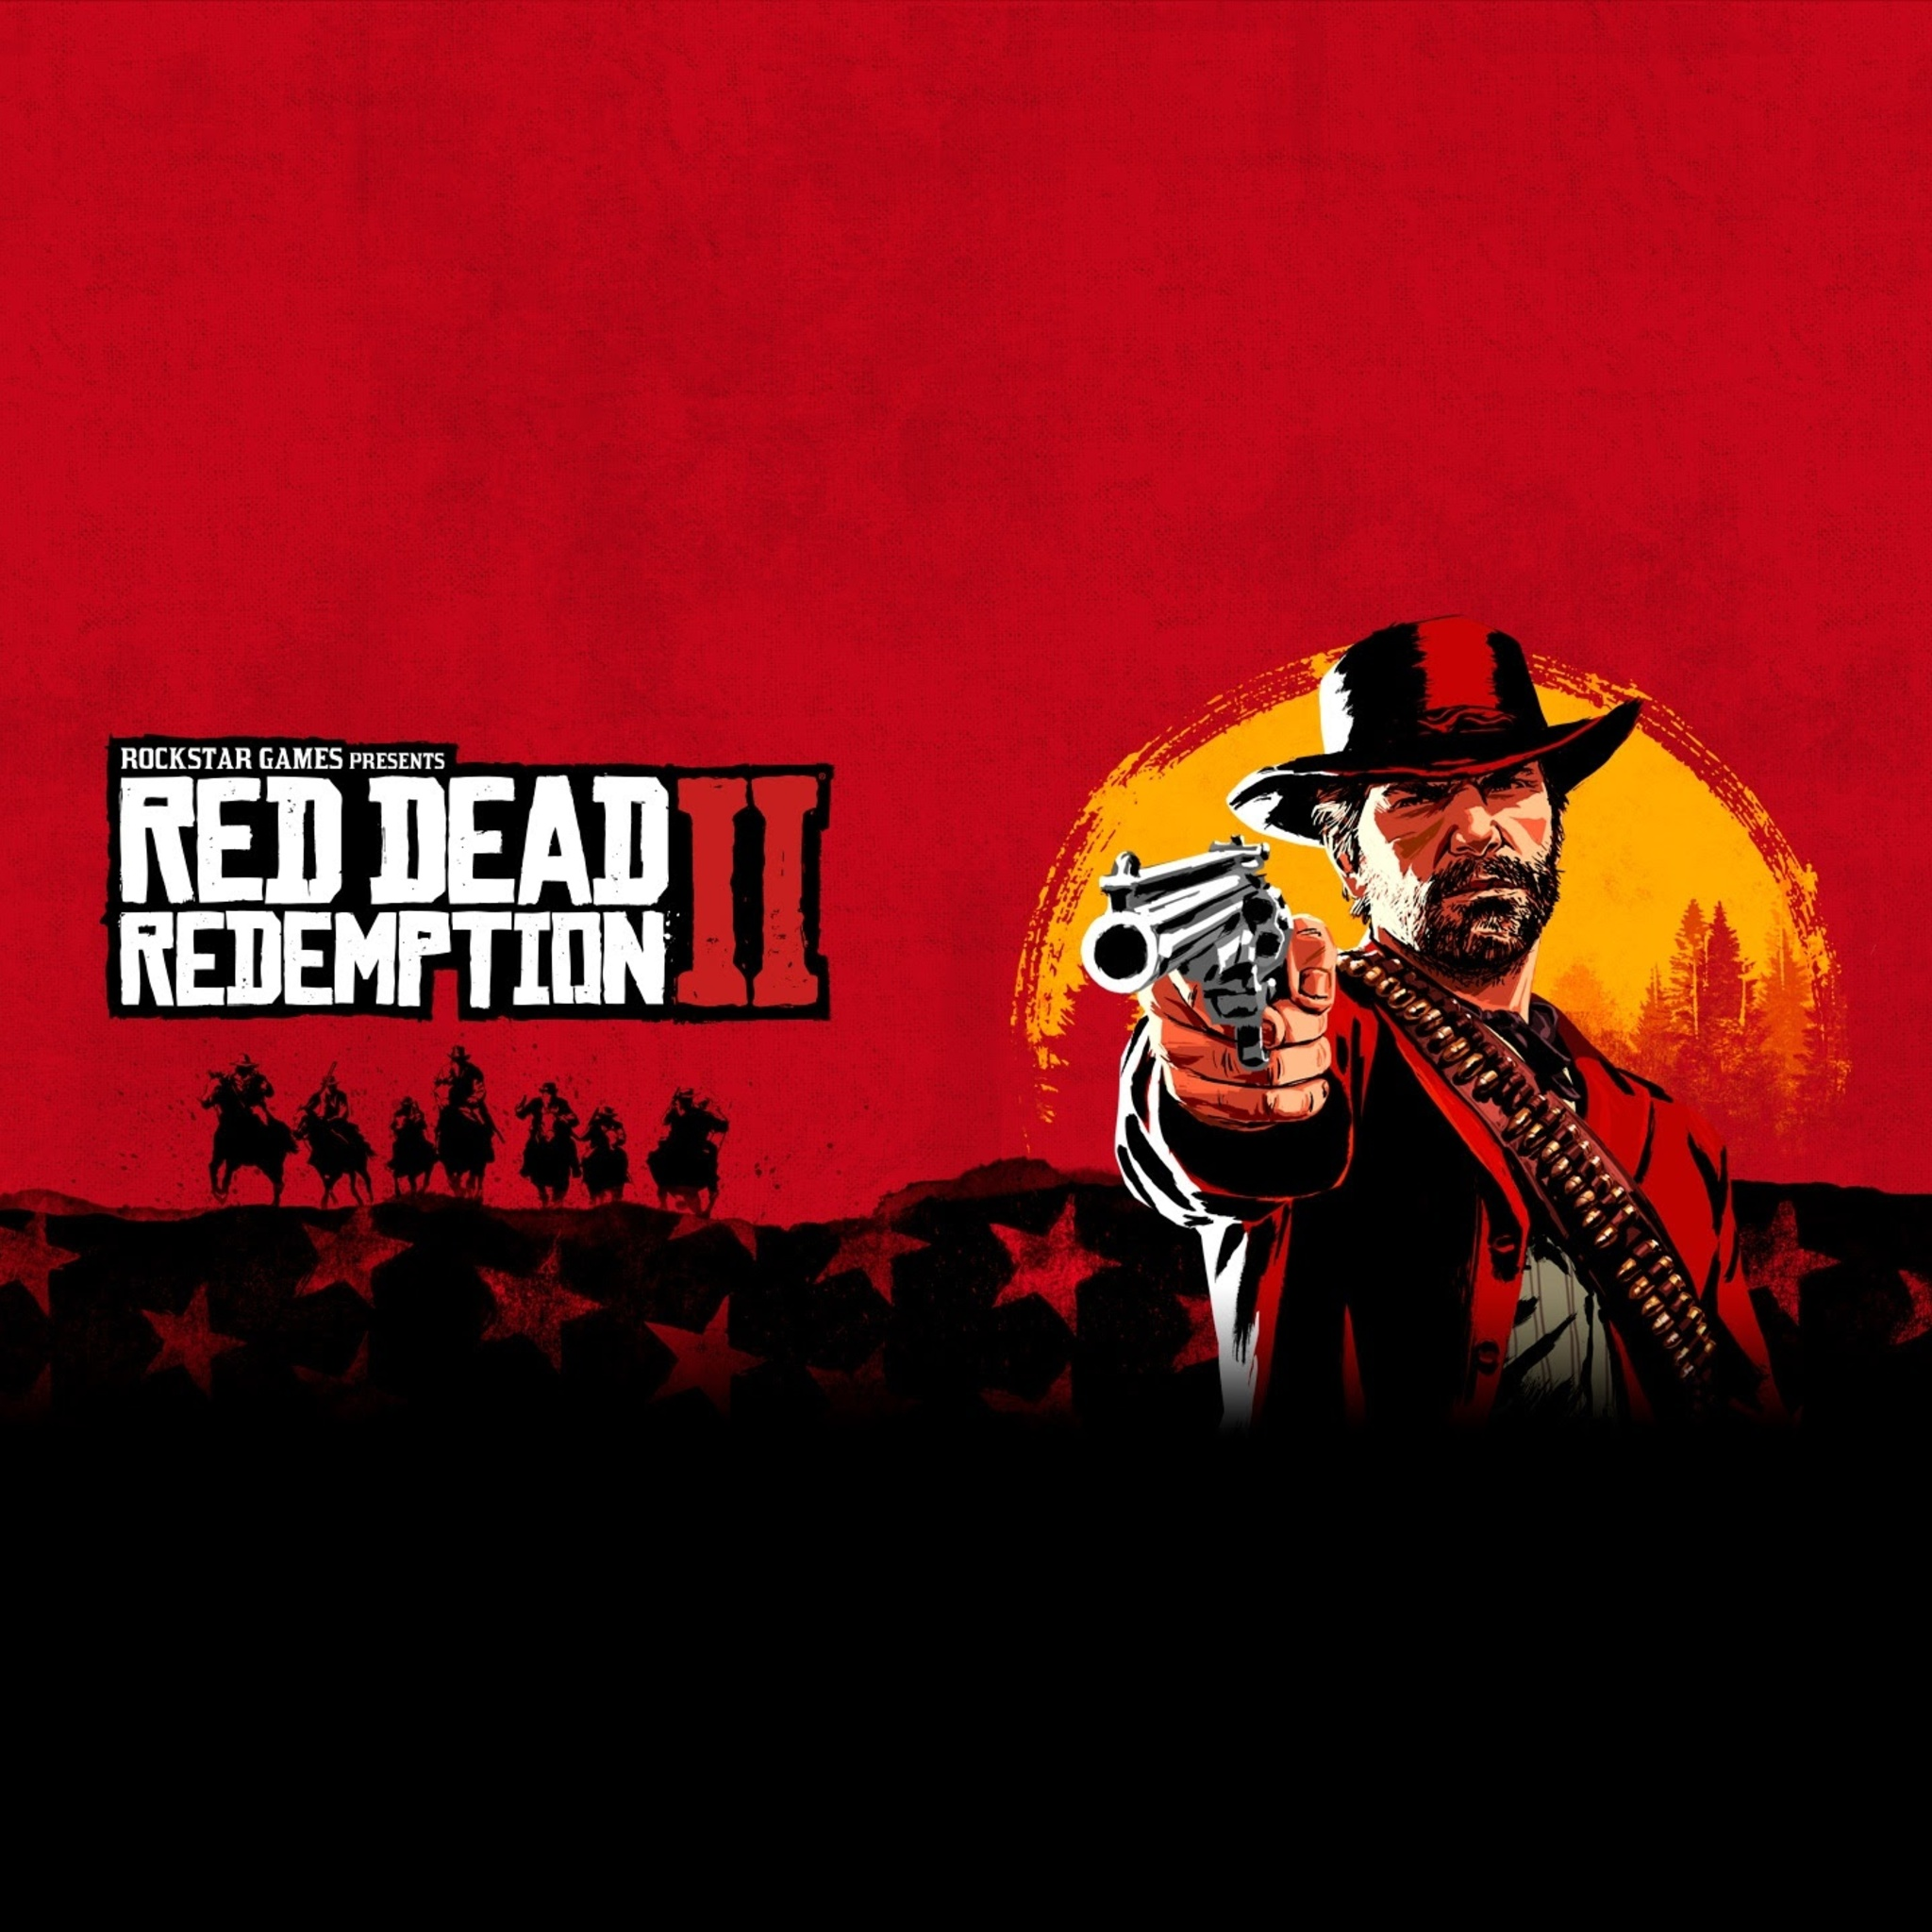 2048x2048 Red Dead Redemption 2 Ipad Air Hd 4k Wallpapers Images